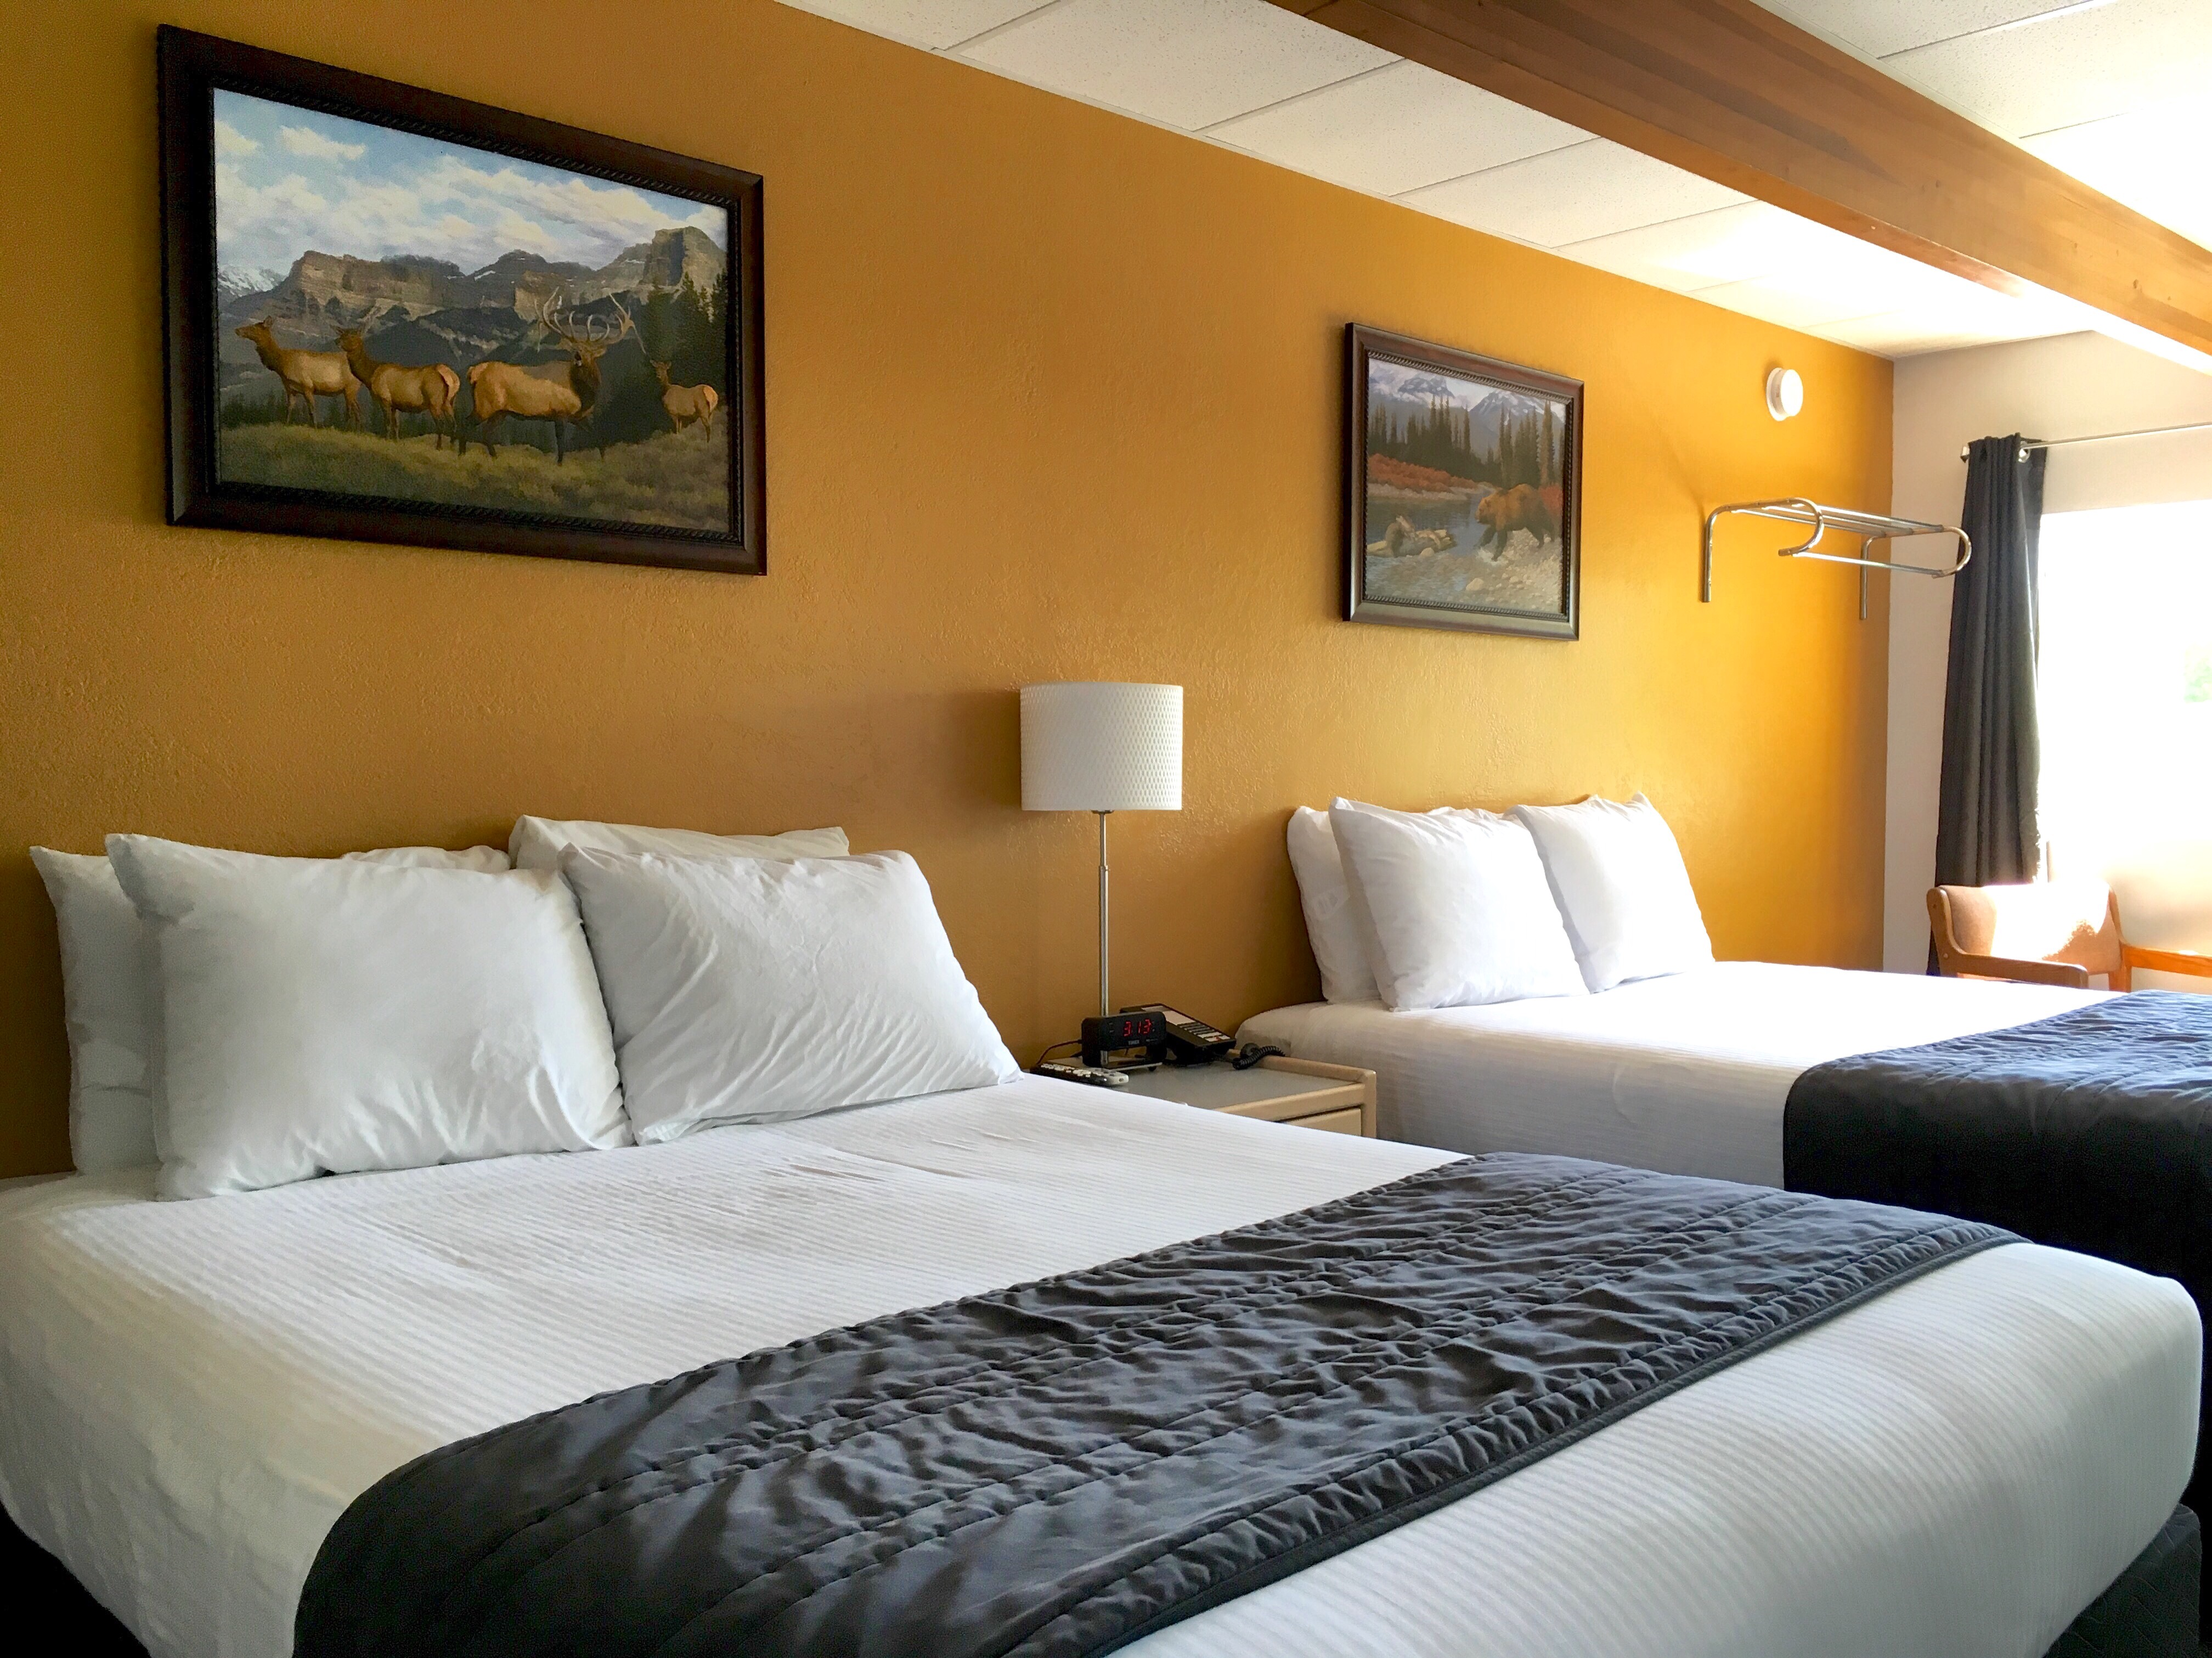 Our larger upstairs rooms overlooking downtown missoula and broadway street feature two queen beds a small table and chairs and a private bath with tub